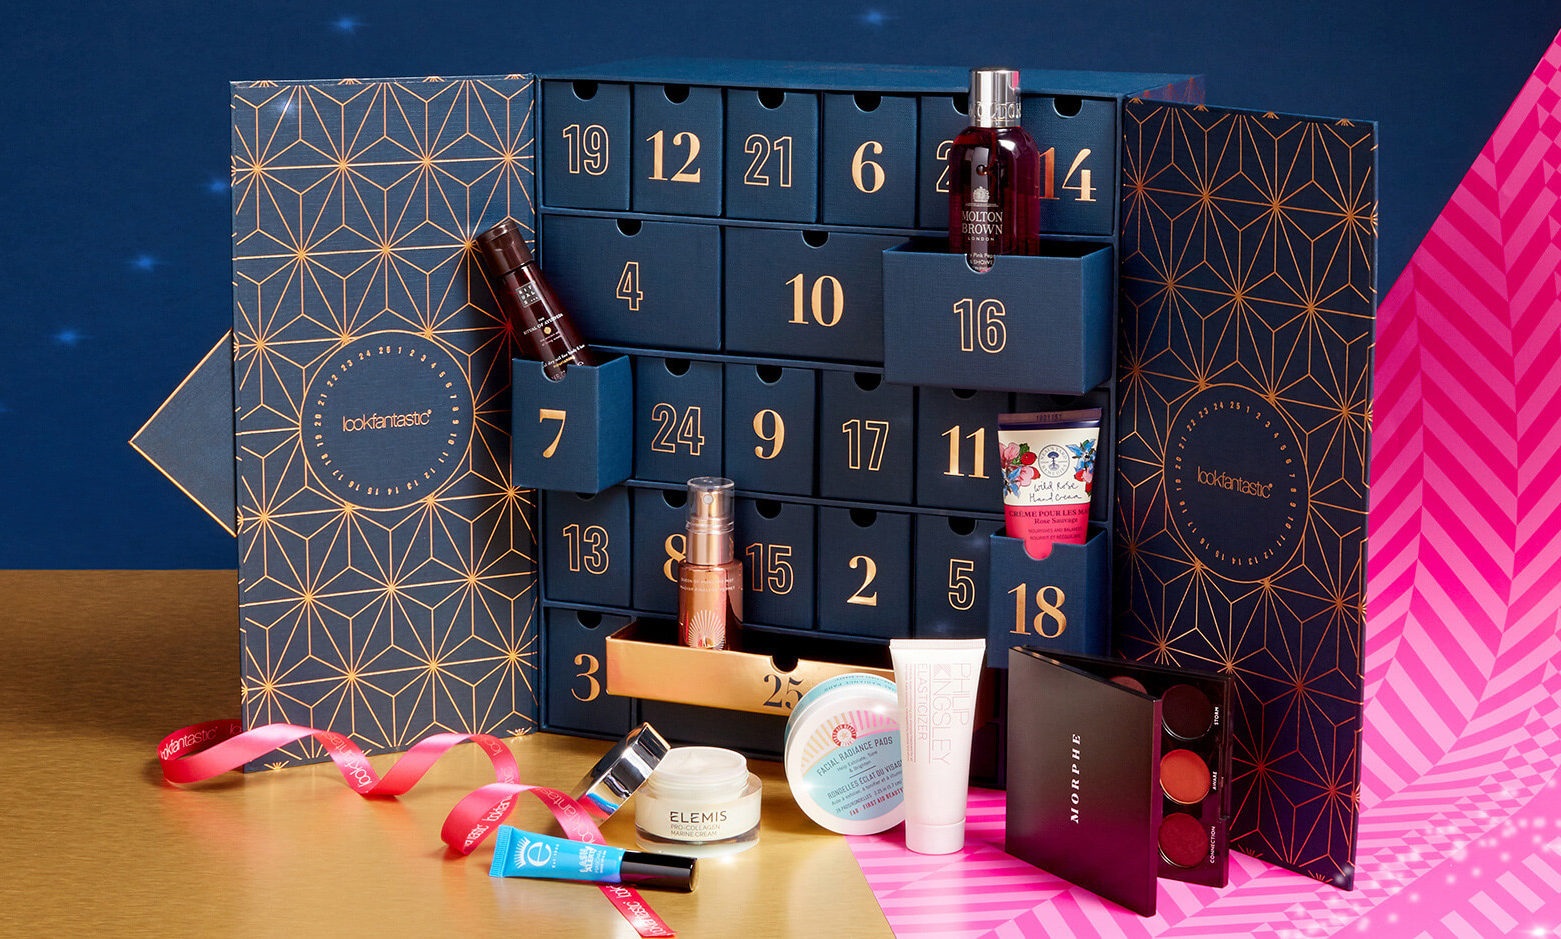 Contenido del Calendario de Adviento 2019 de Lookfantastic Beauty Advent Calendar Spoiler